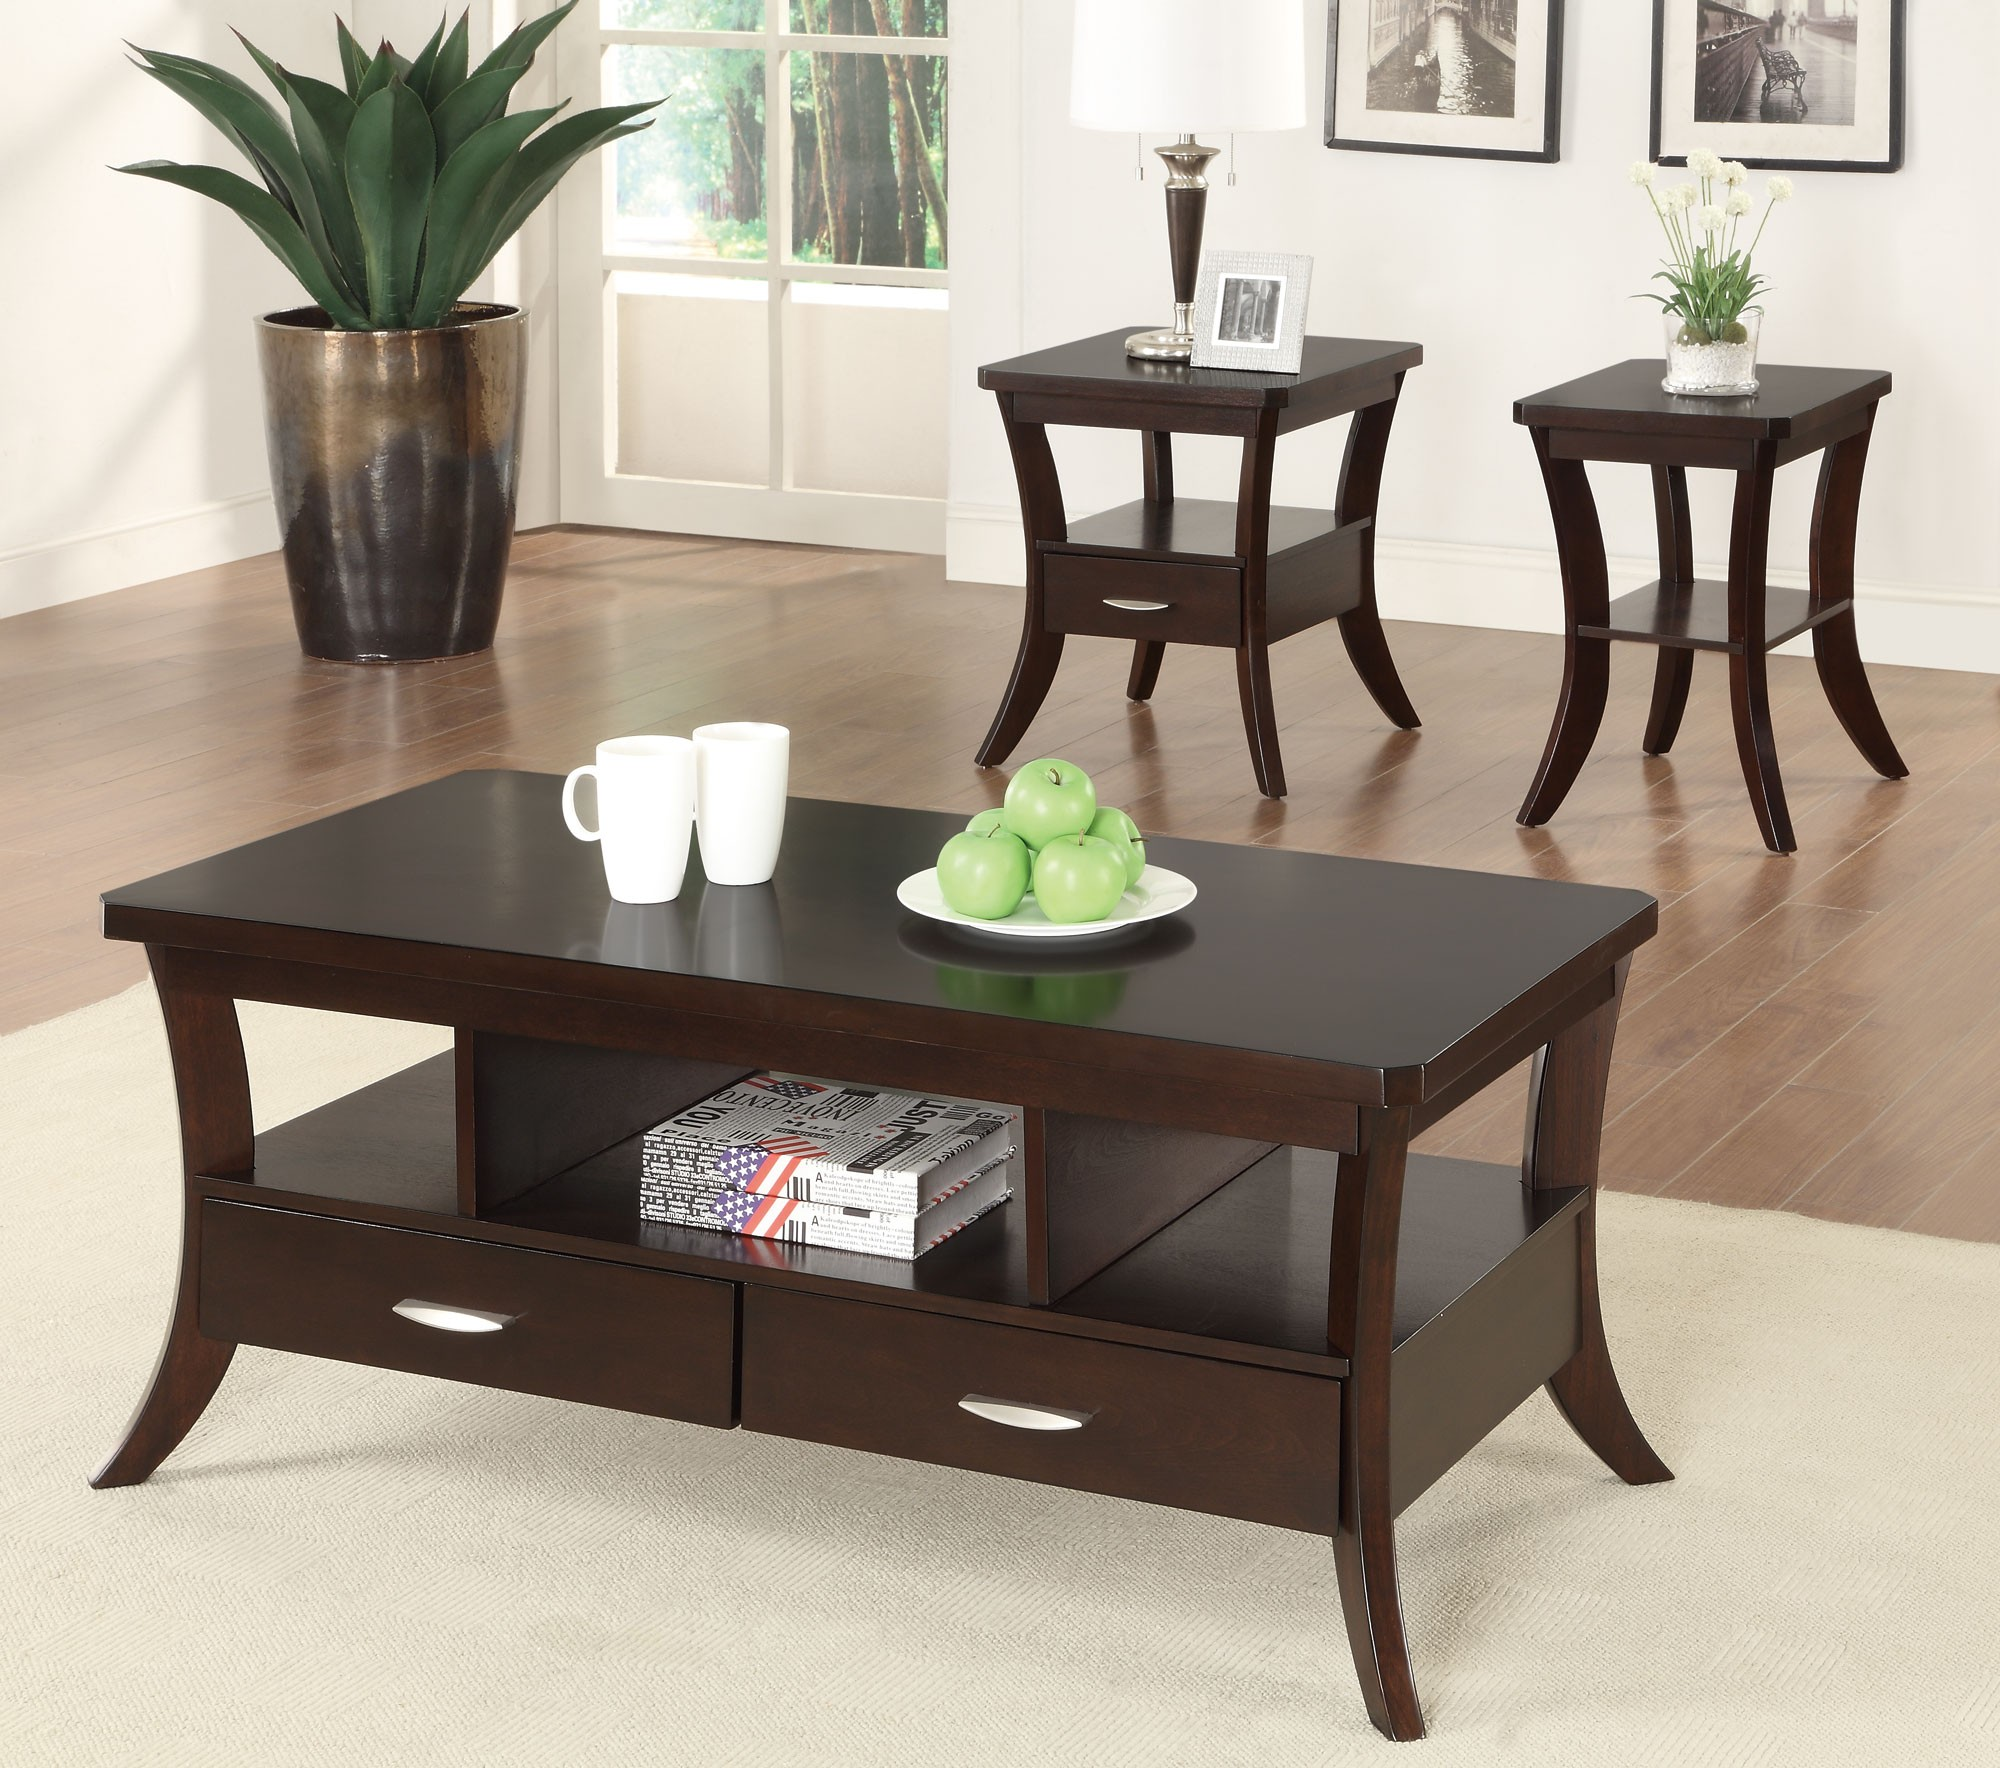 702508 espresso coffee table from coaster 702508 coleman furniture. Black Bedroom Furniture Sets. Home Design Ideas